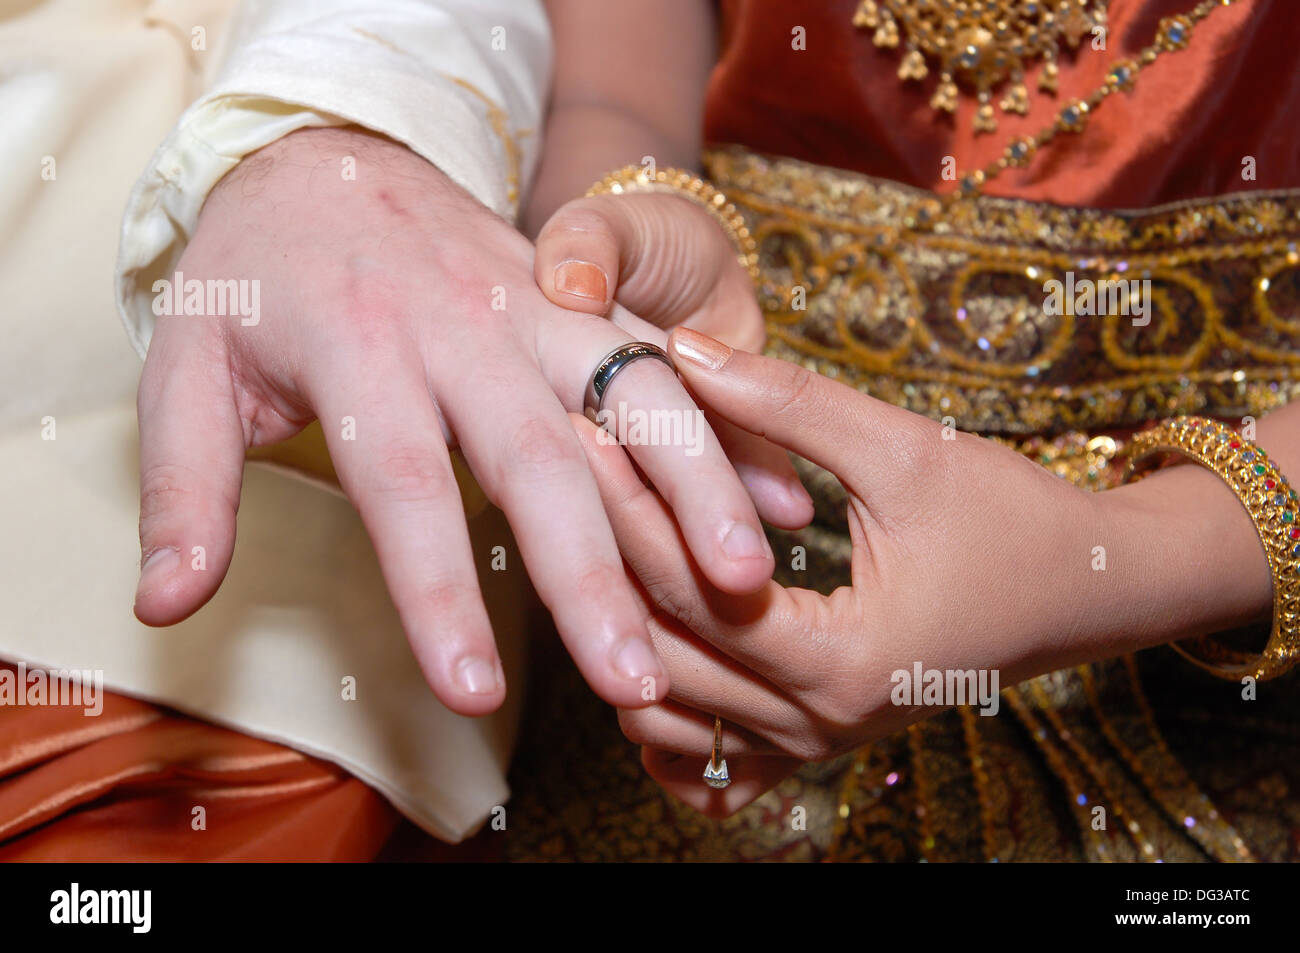 Wearing Wedding Ring Stock Photos & Wearing Wedding Ring Stock ...